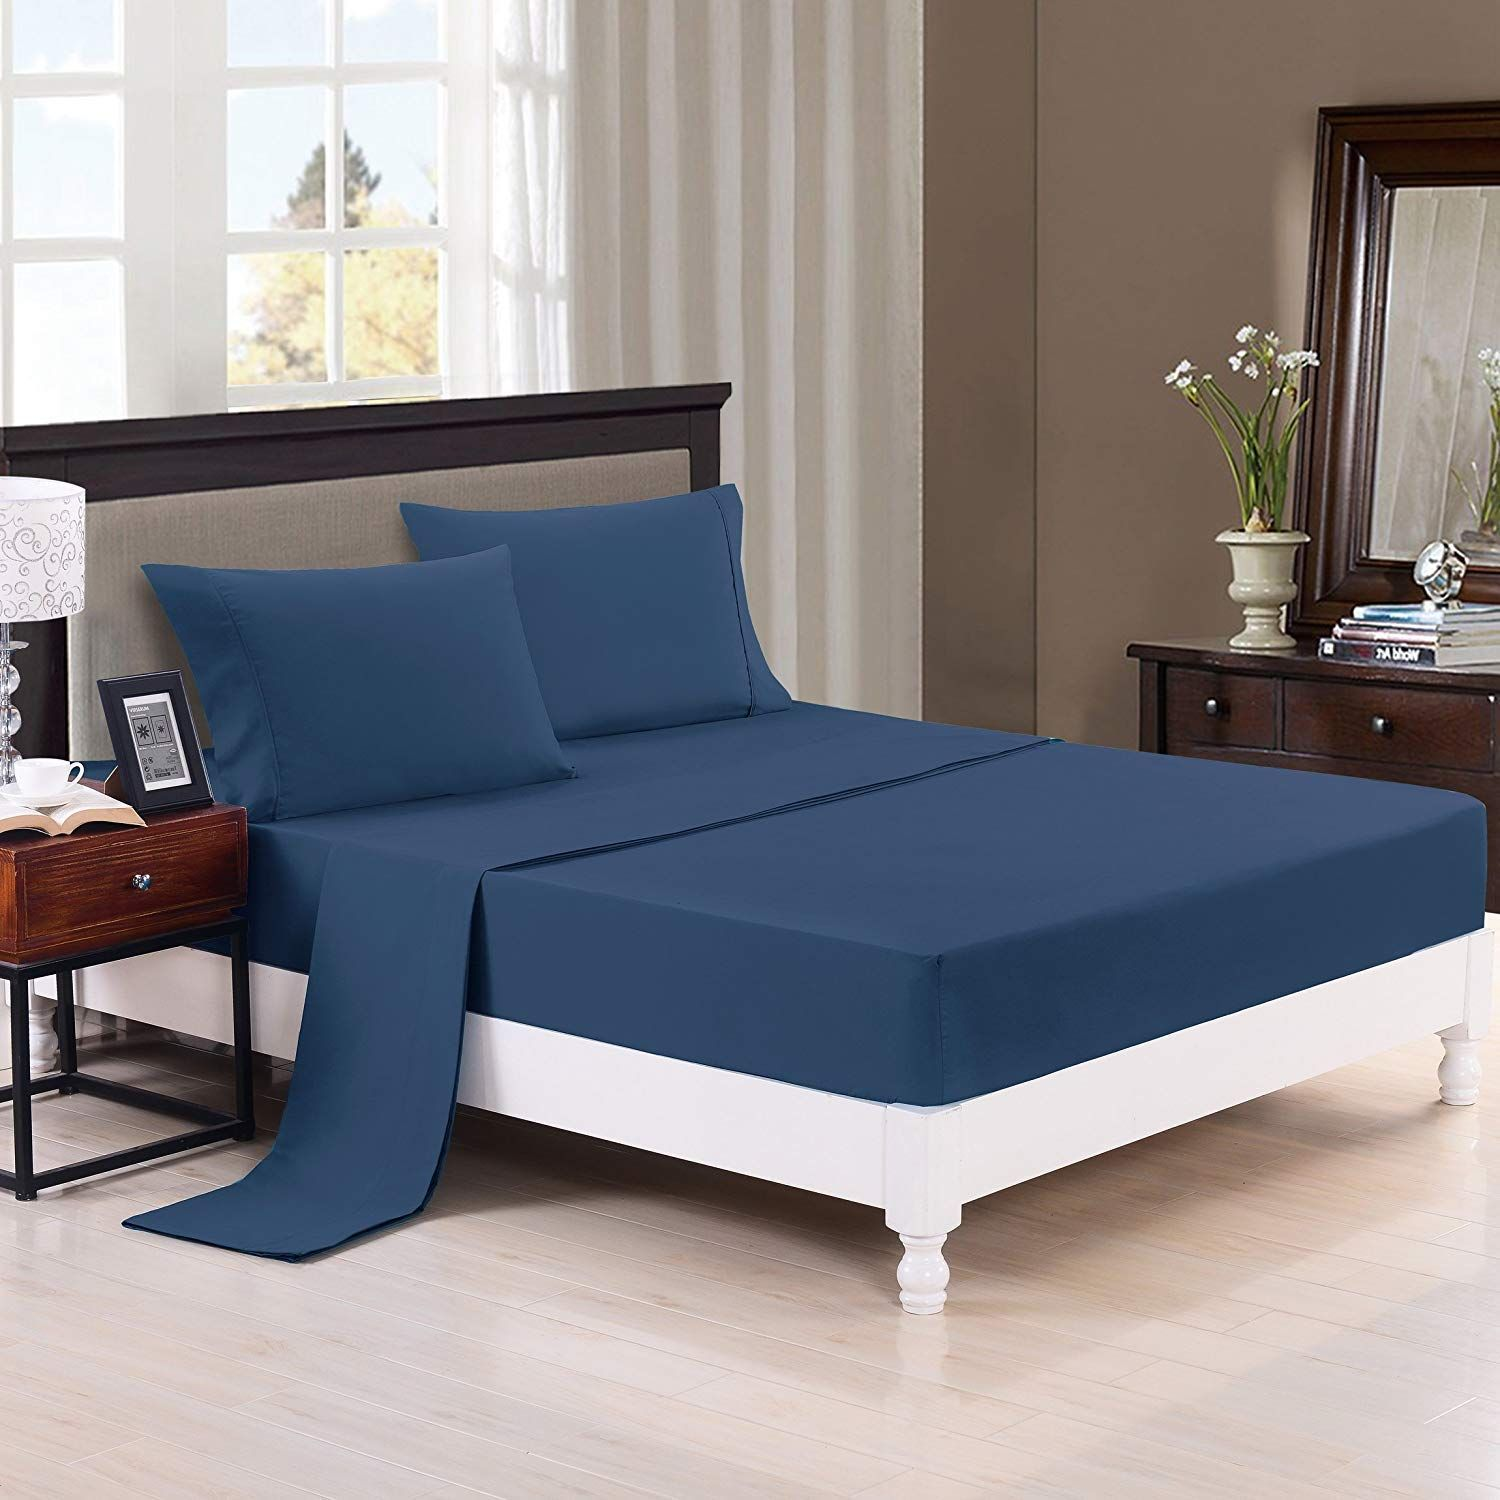 Authentic Heavy Quality Super Soft Bed Sheets 1200Thread